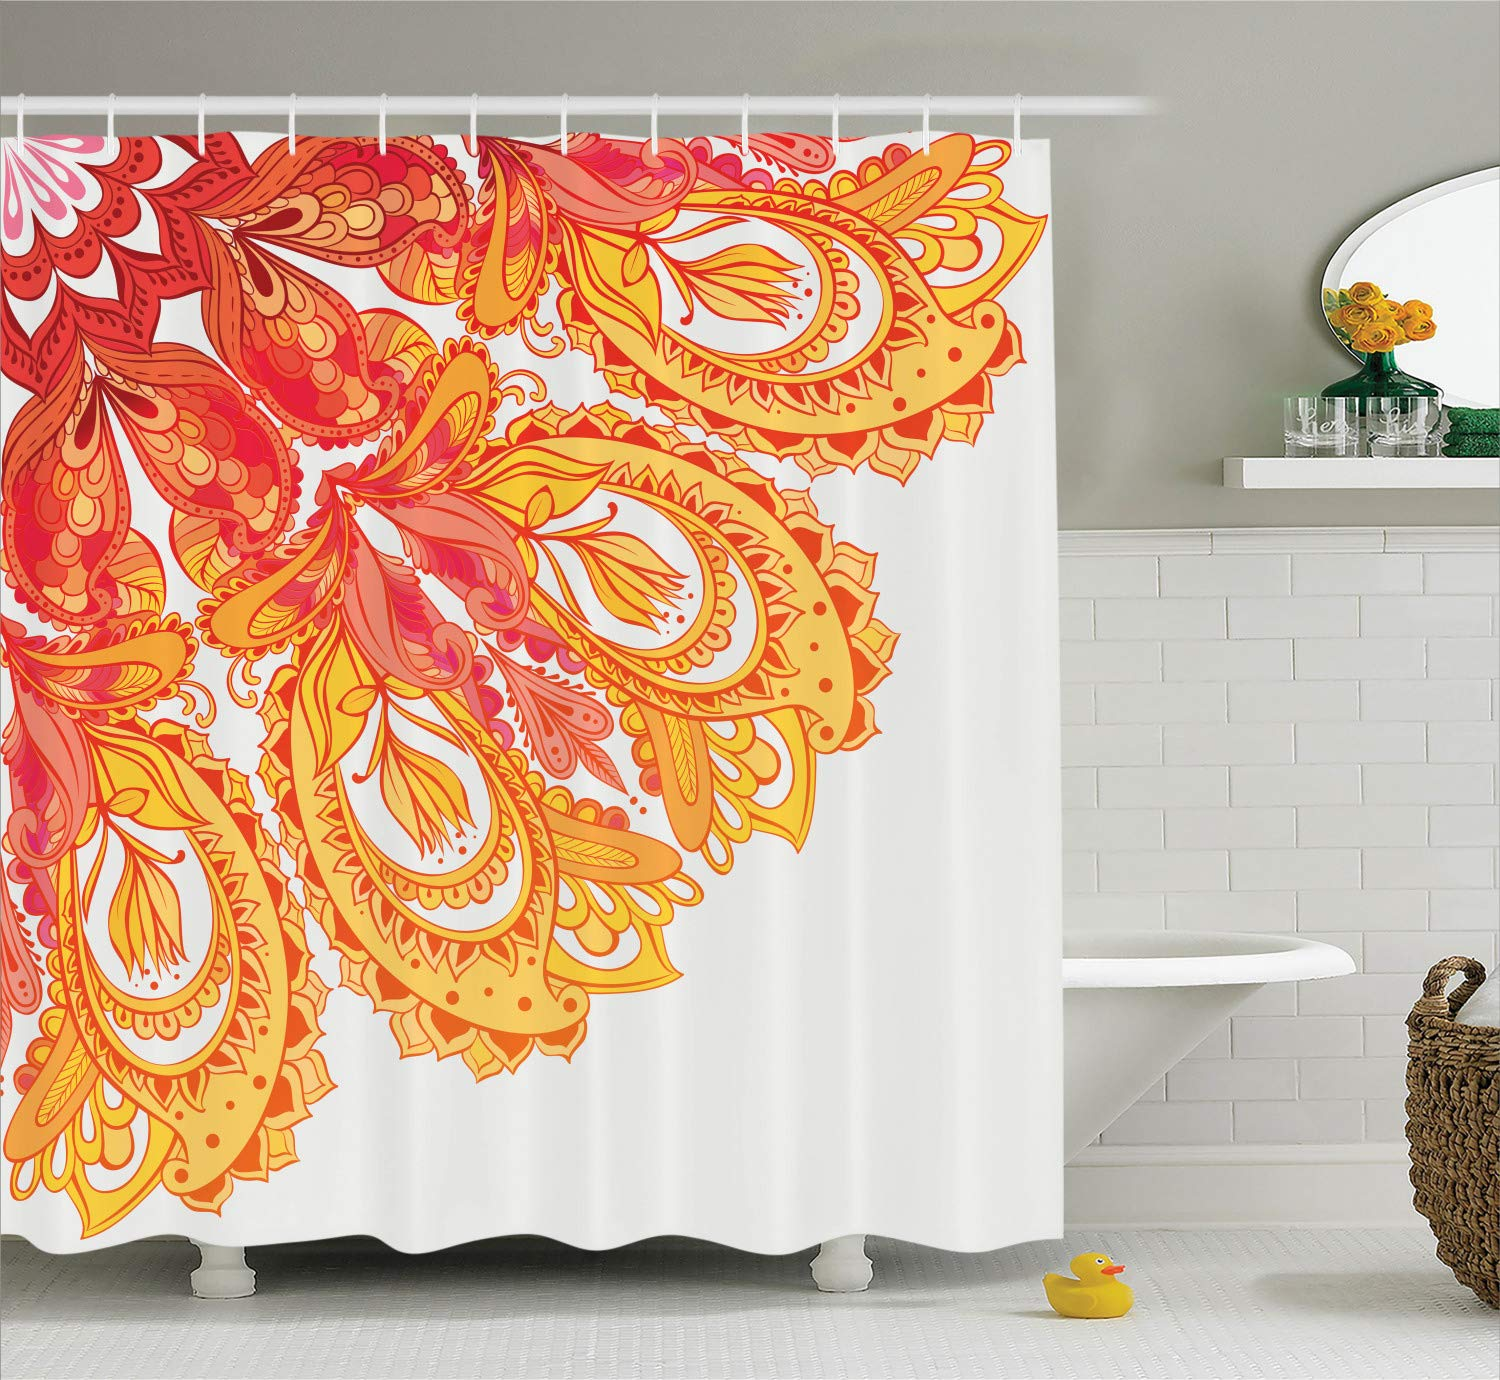 Mandala Decor Shower Curtain by Ambesonne, Edge of Mandala Pattern Detailed Paisley Forms Mystic Traditional Ethnic Art Decor, Polyester Fabric Bathroom Set with Hooks, 75 Inches Long, Orange White